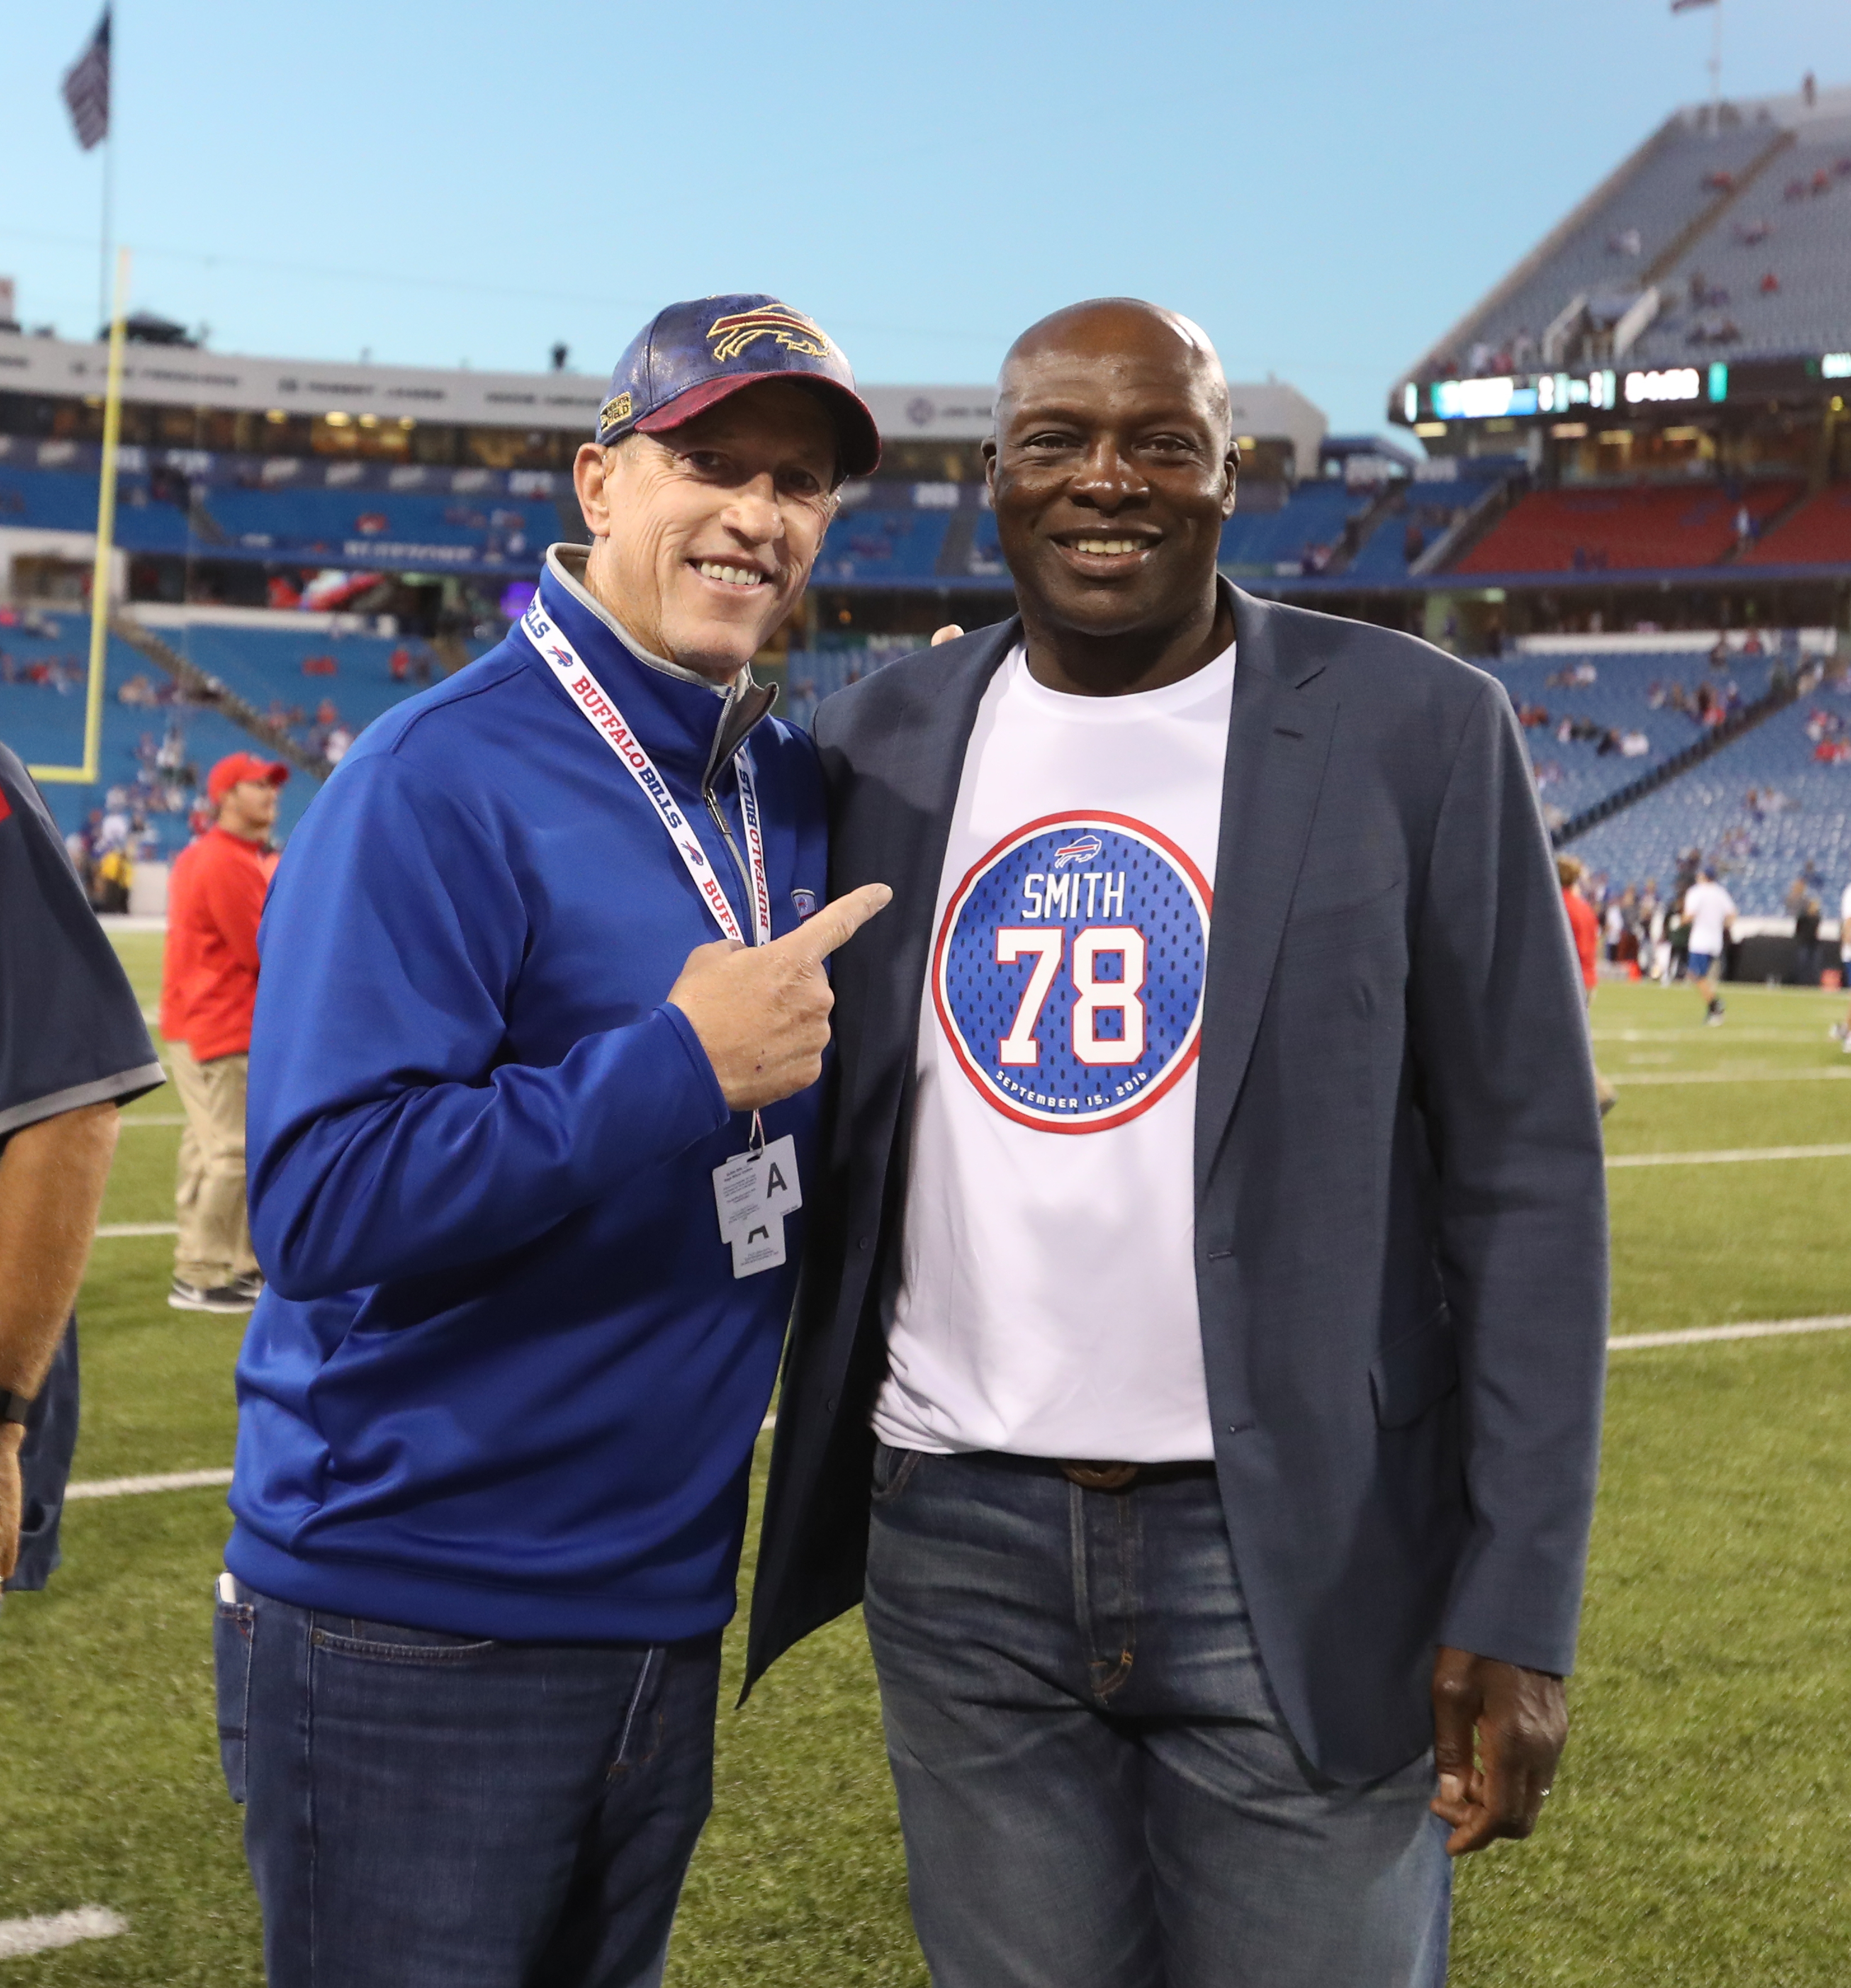 Jim Kelly poses on the sidelines with Bruce Smith before the game at New Era Field in Orchard Park,MD on Thursday, Sept. 15, 2016.  (James P. McCoy/ Buffalo News)